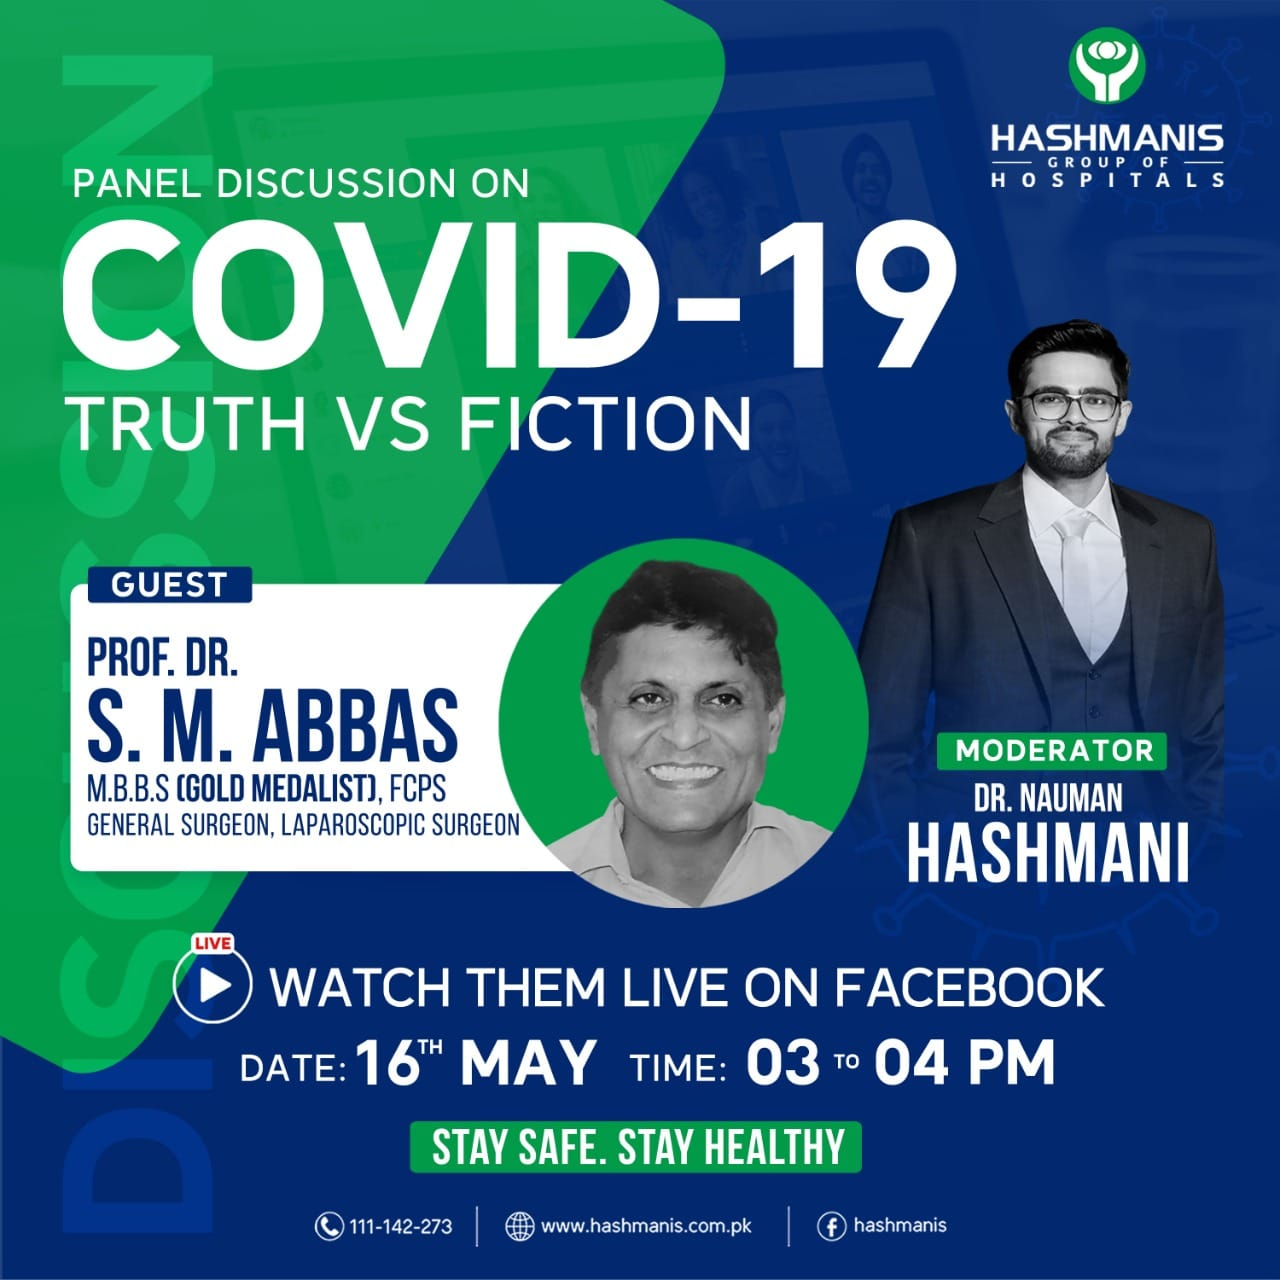 Panel Discussion on Covid-19 Truth vs Fiction